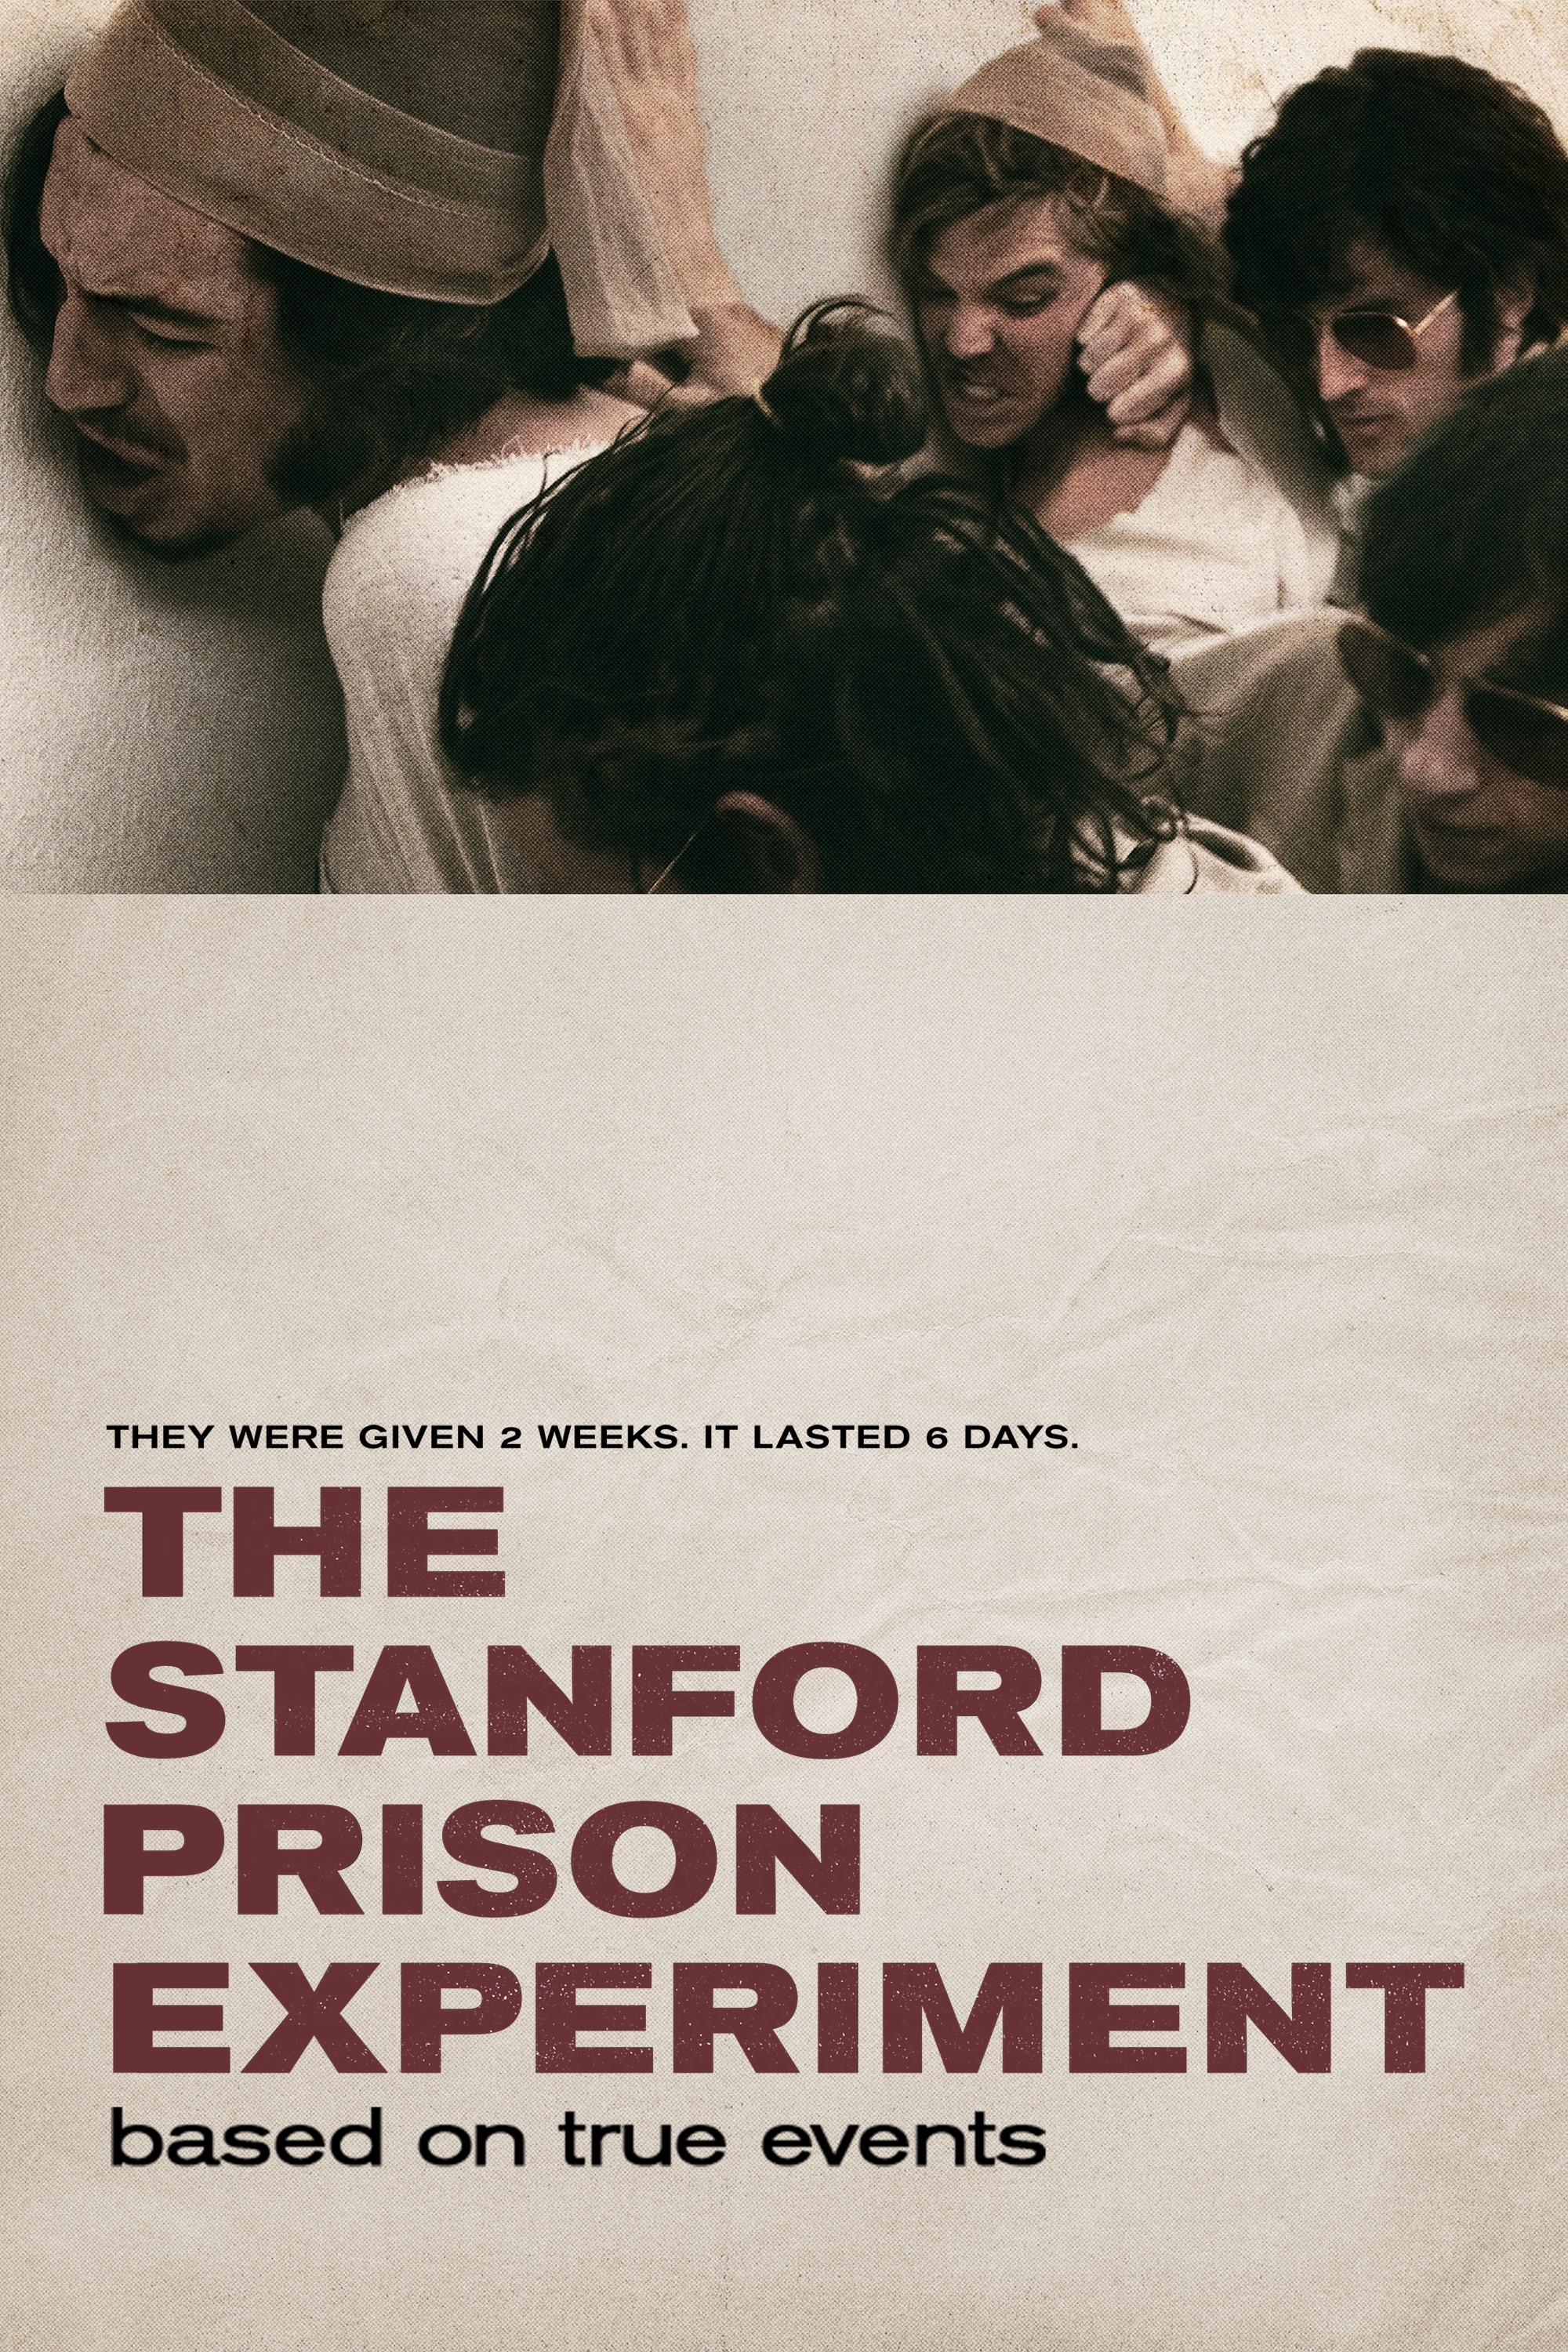 the stanford prison experiment In 1971, philip zimbardo conducted a notorious study on human behavior by setting up a fake prison learn more about the stanford prison experiment.